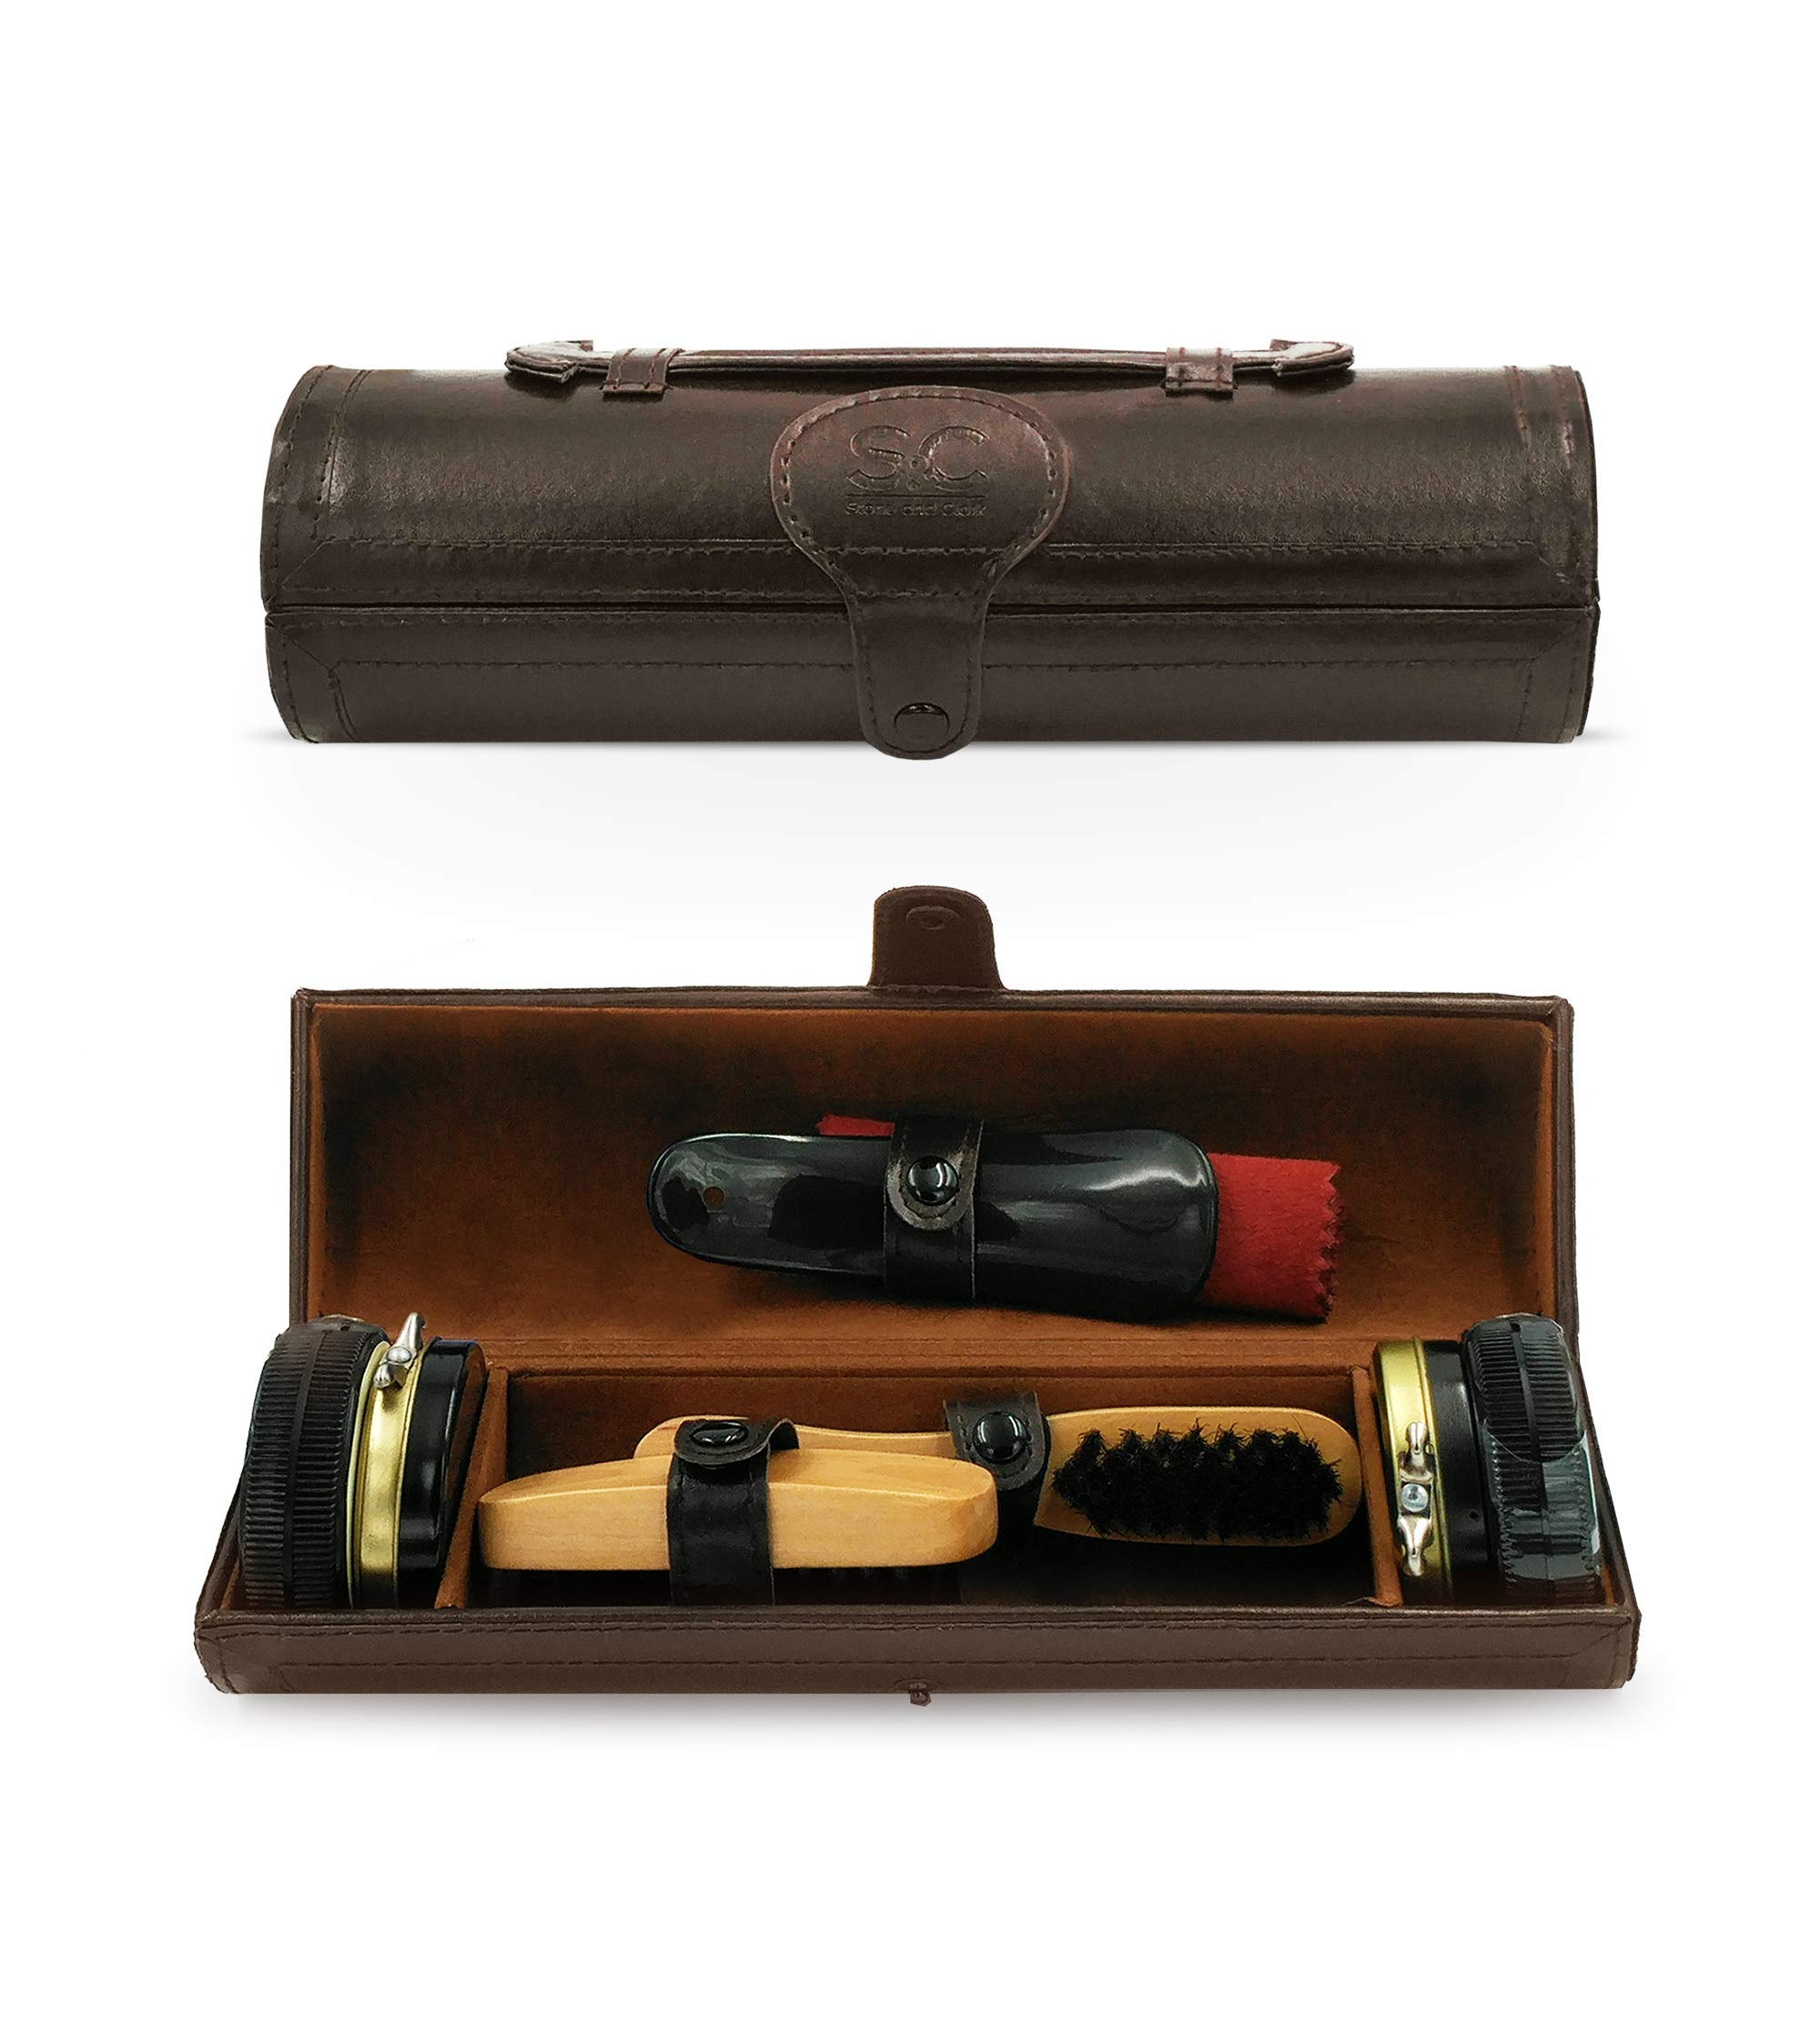 Stone & Clark 9PC Shoe Polish & Care Kit, Leather Shoe Shine Kit with Brown Wax, Shoe Brushes for Polishing, Shine Cloth & Shoe Horn,Compact Shoe Cleaning Kit With Shoes Shine Brush & PU Leather Case